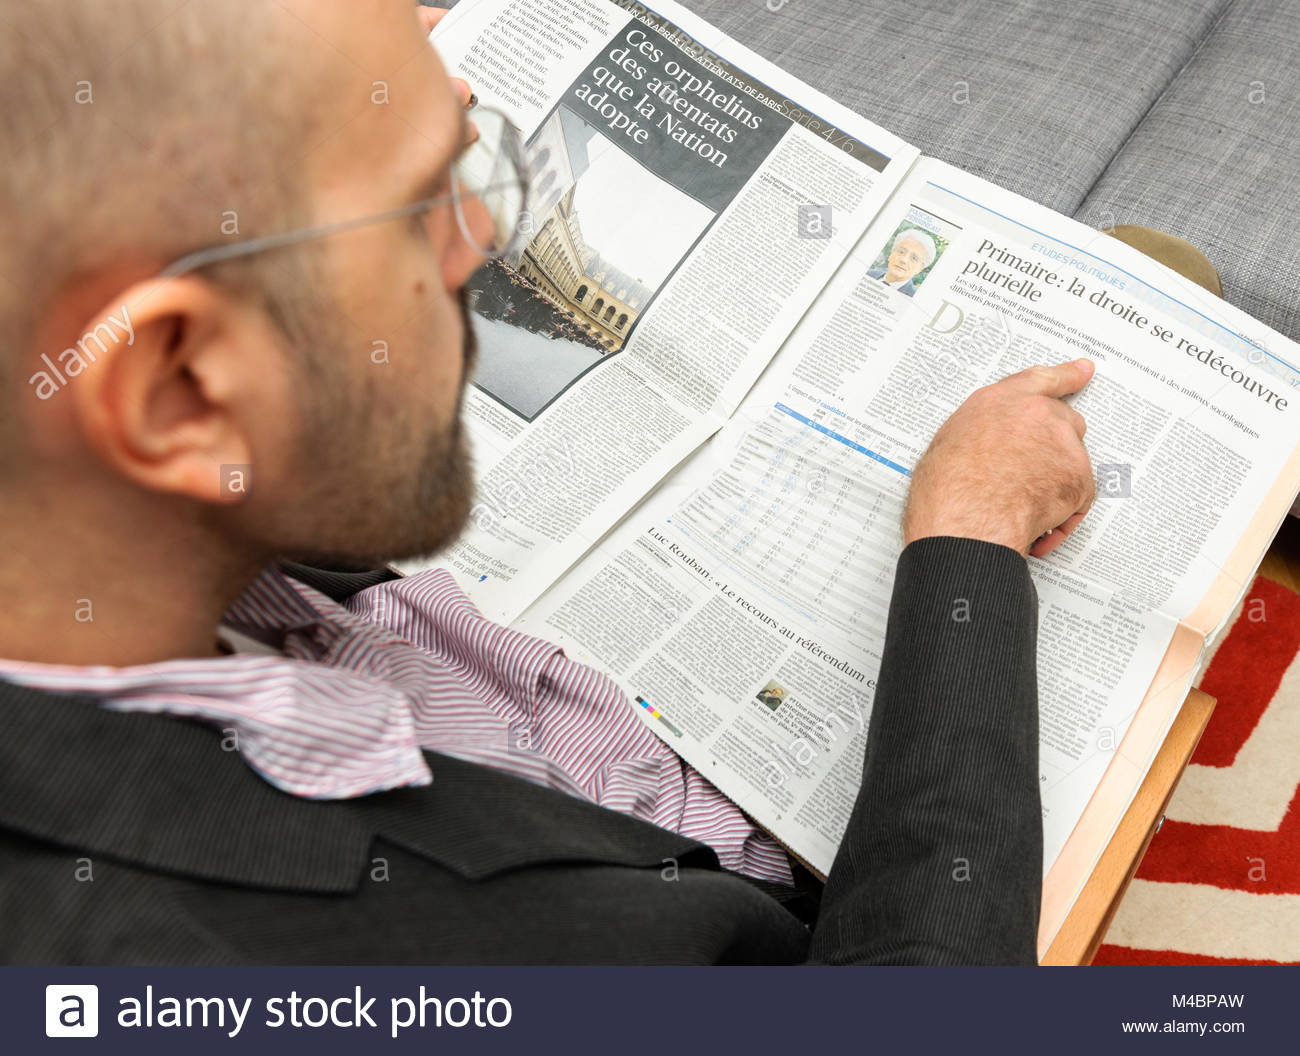 Man reading The Republicans (France) presidential primary - Stock Image